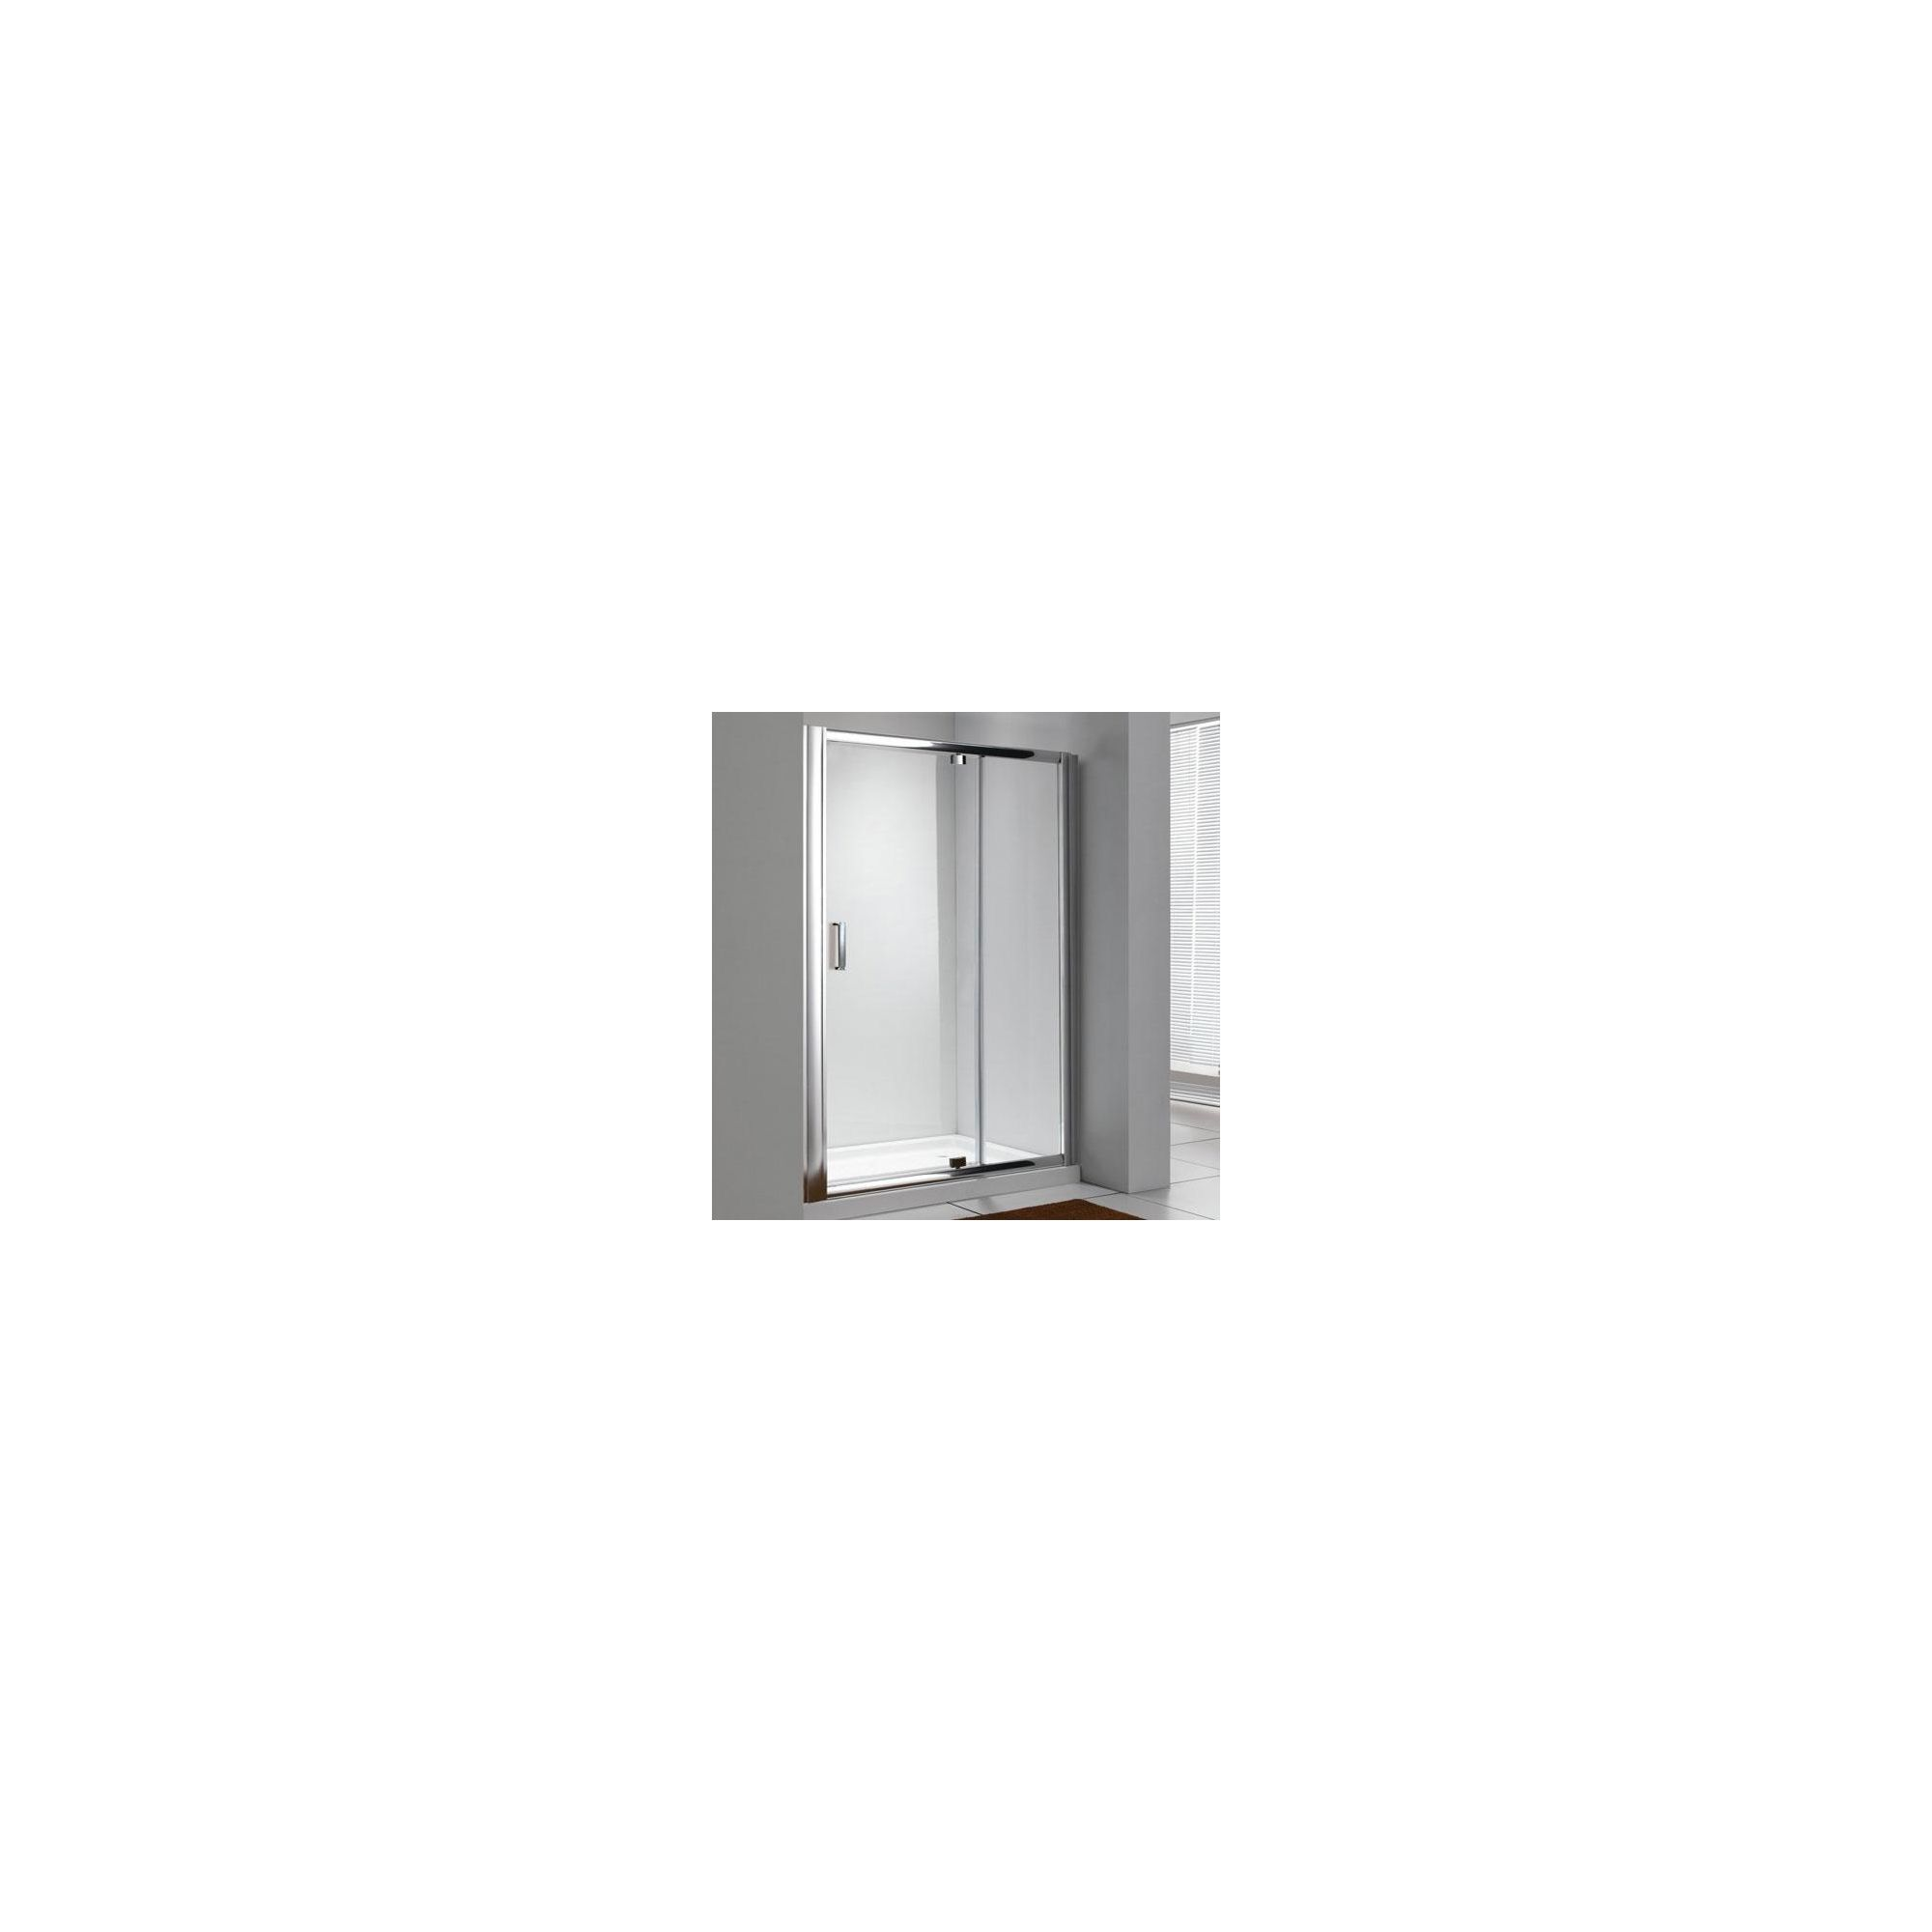 Duchy Style Pivot Door Shower Enclosure, 1000mm x 1000mm, 6mm Glass, Low Profile Tray at Tescos Direct